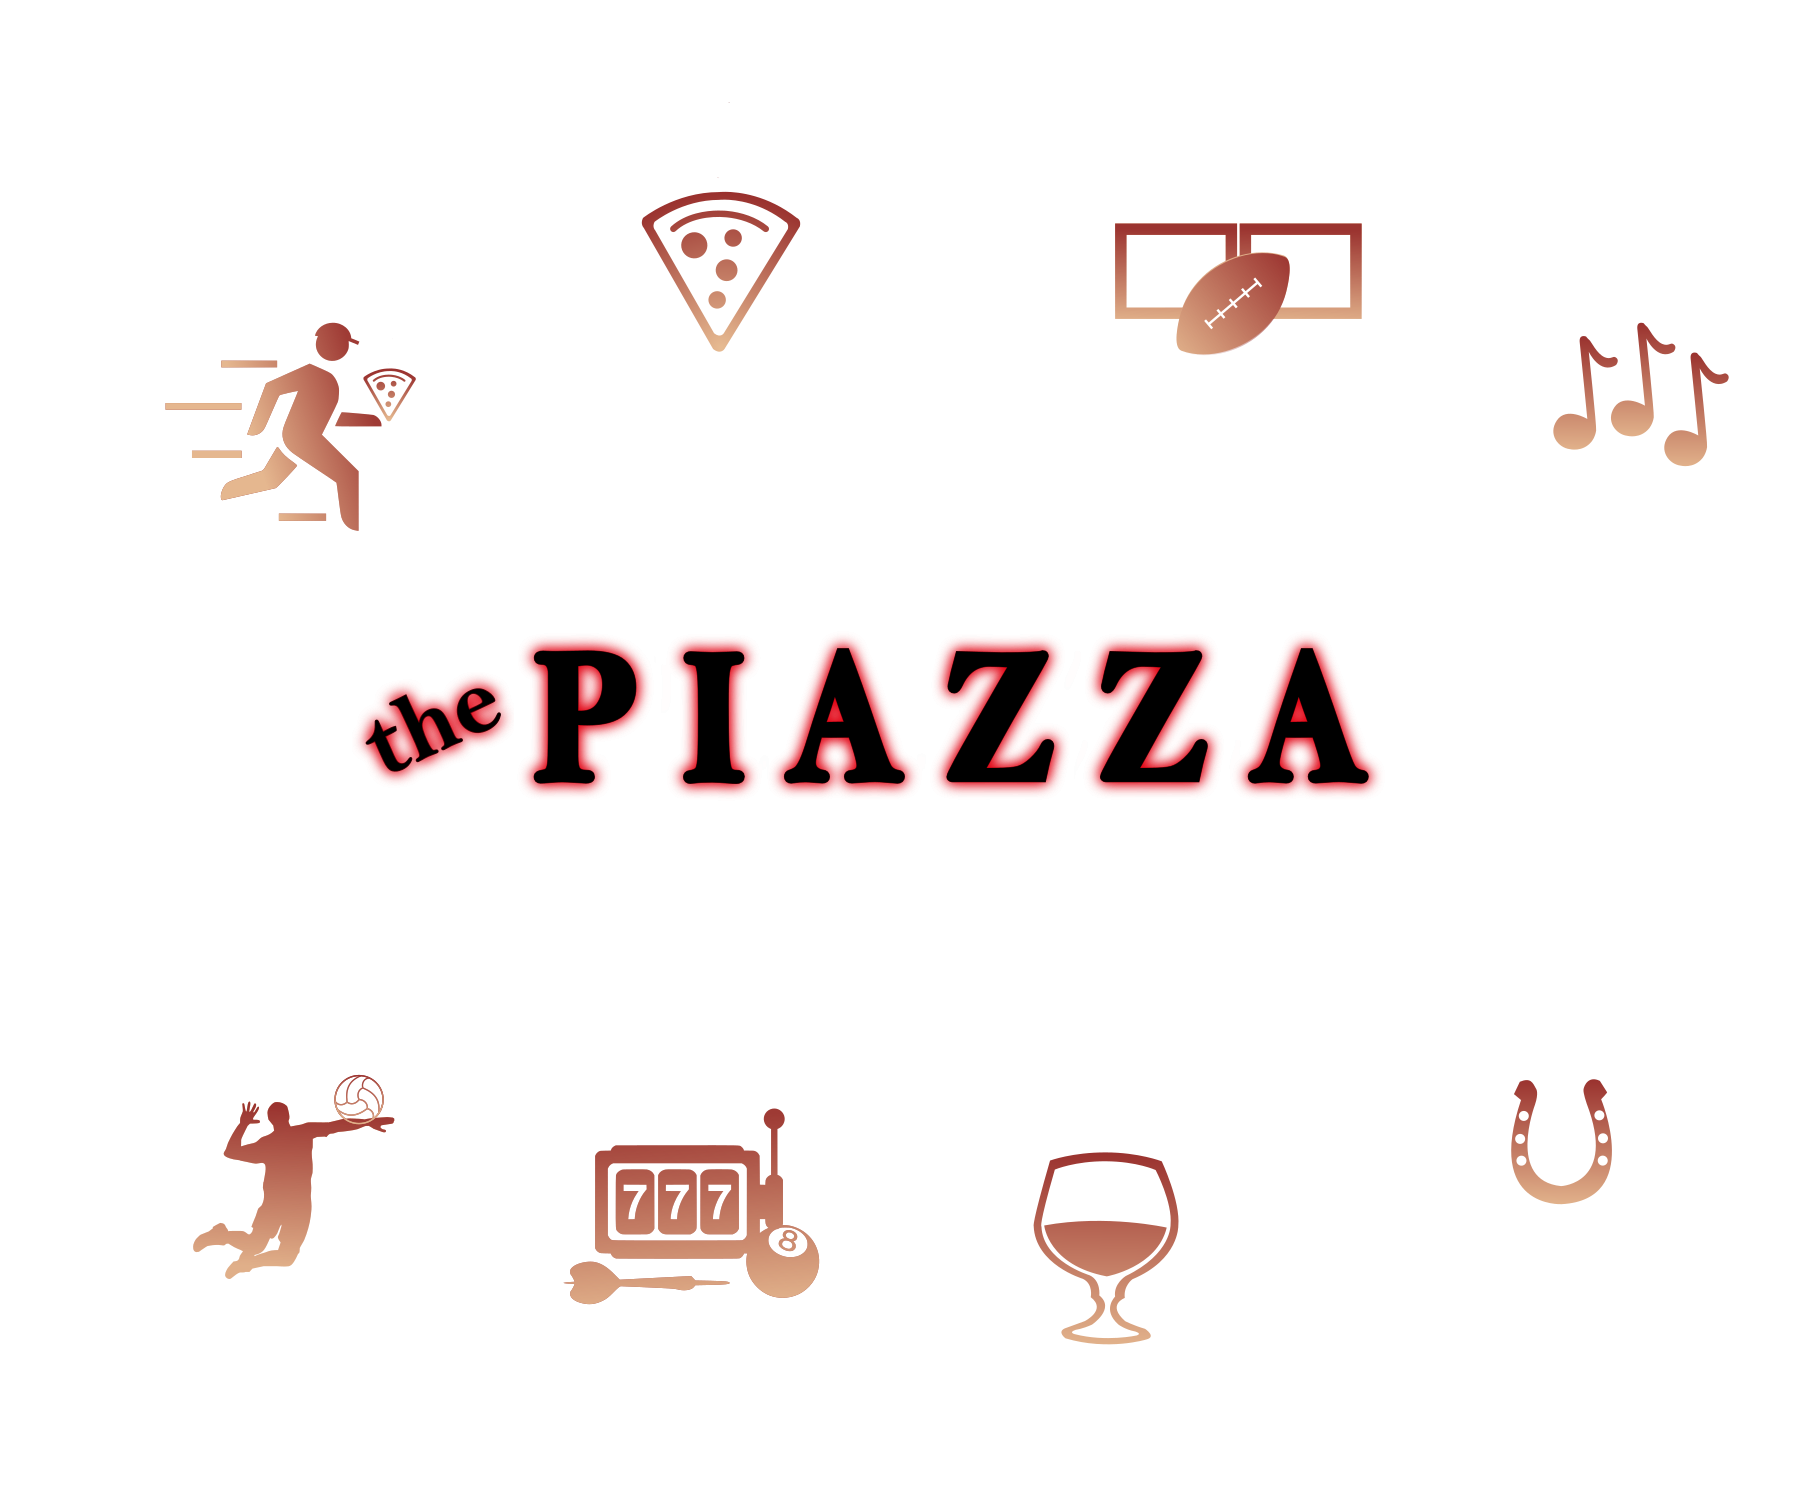 The piazza - your entertainment venue - Salerno's Express - Carryout & Delivery - Pizza & Eats - Sports Venue - Piazza live events - Off track Betting - Craft Beer & Spirits - Games - volleyball and beer garden